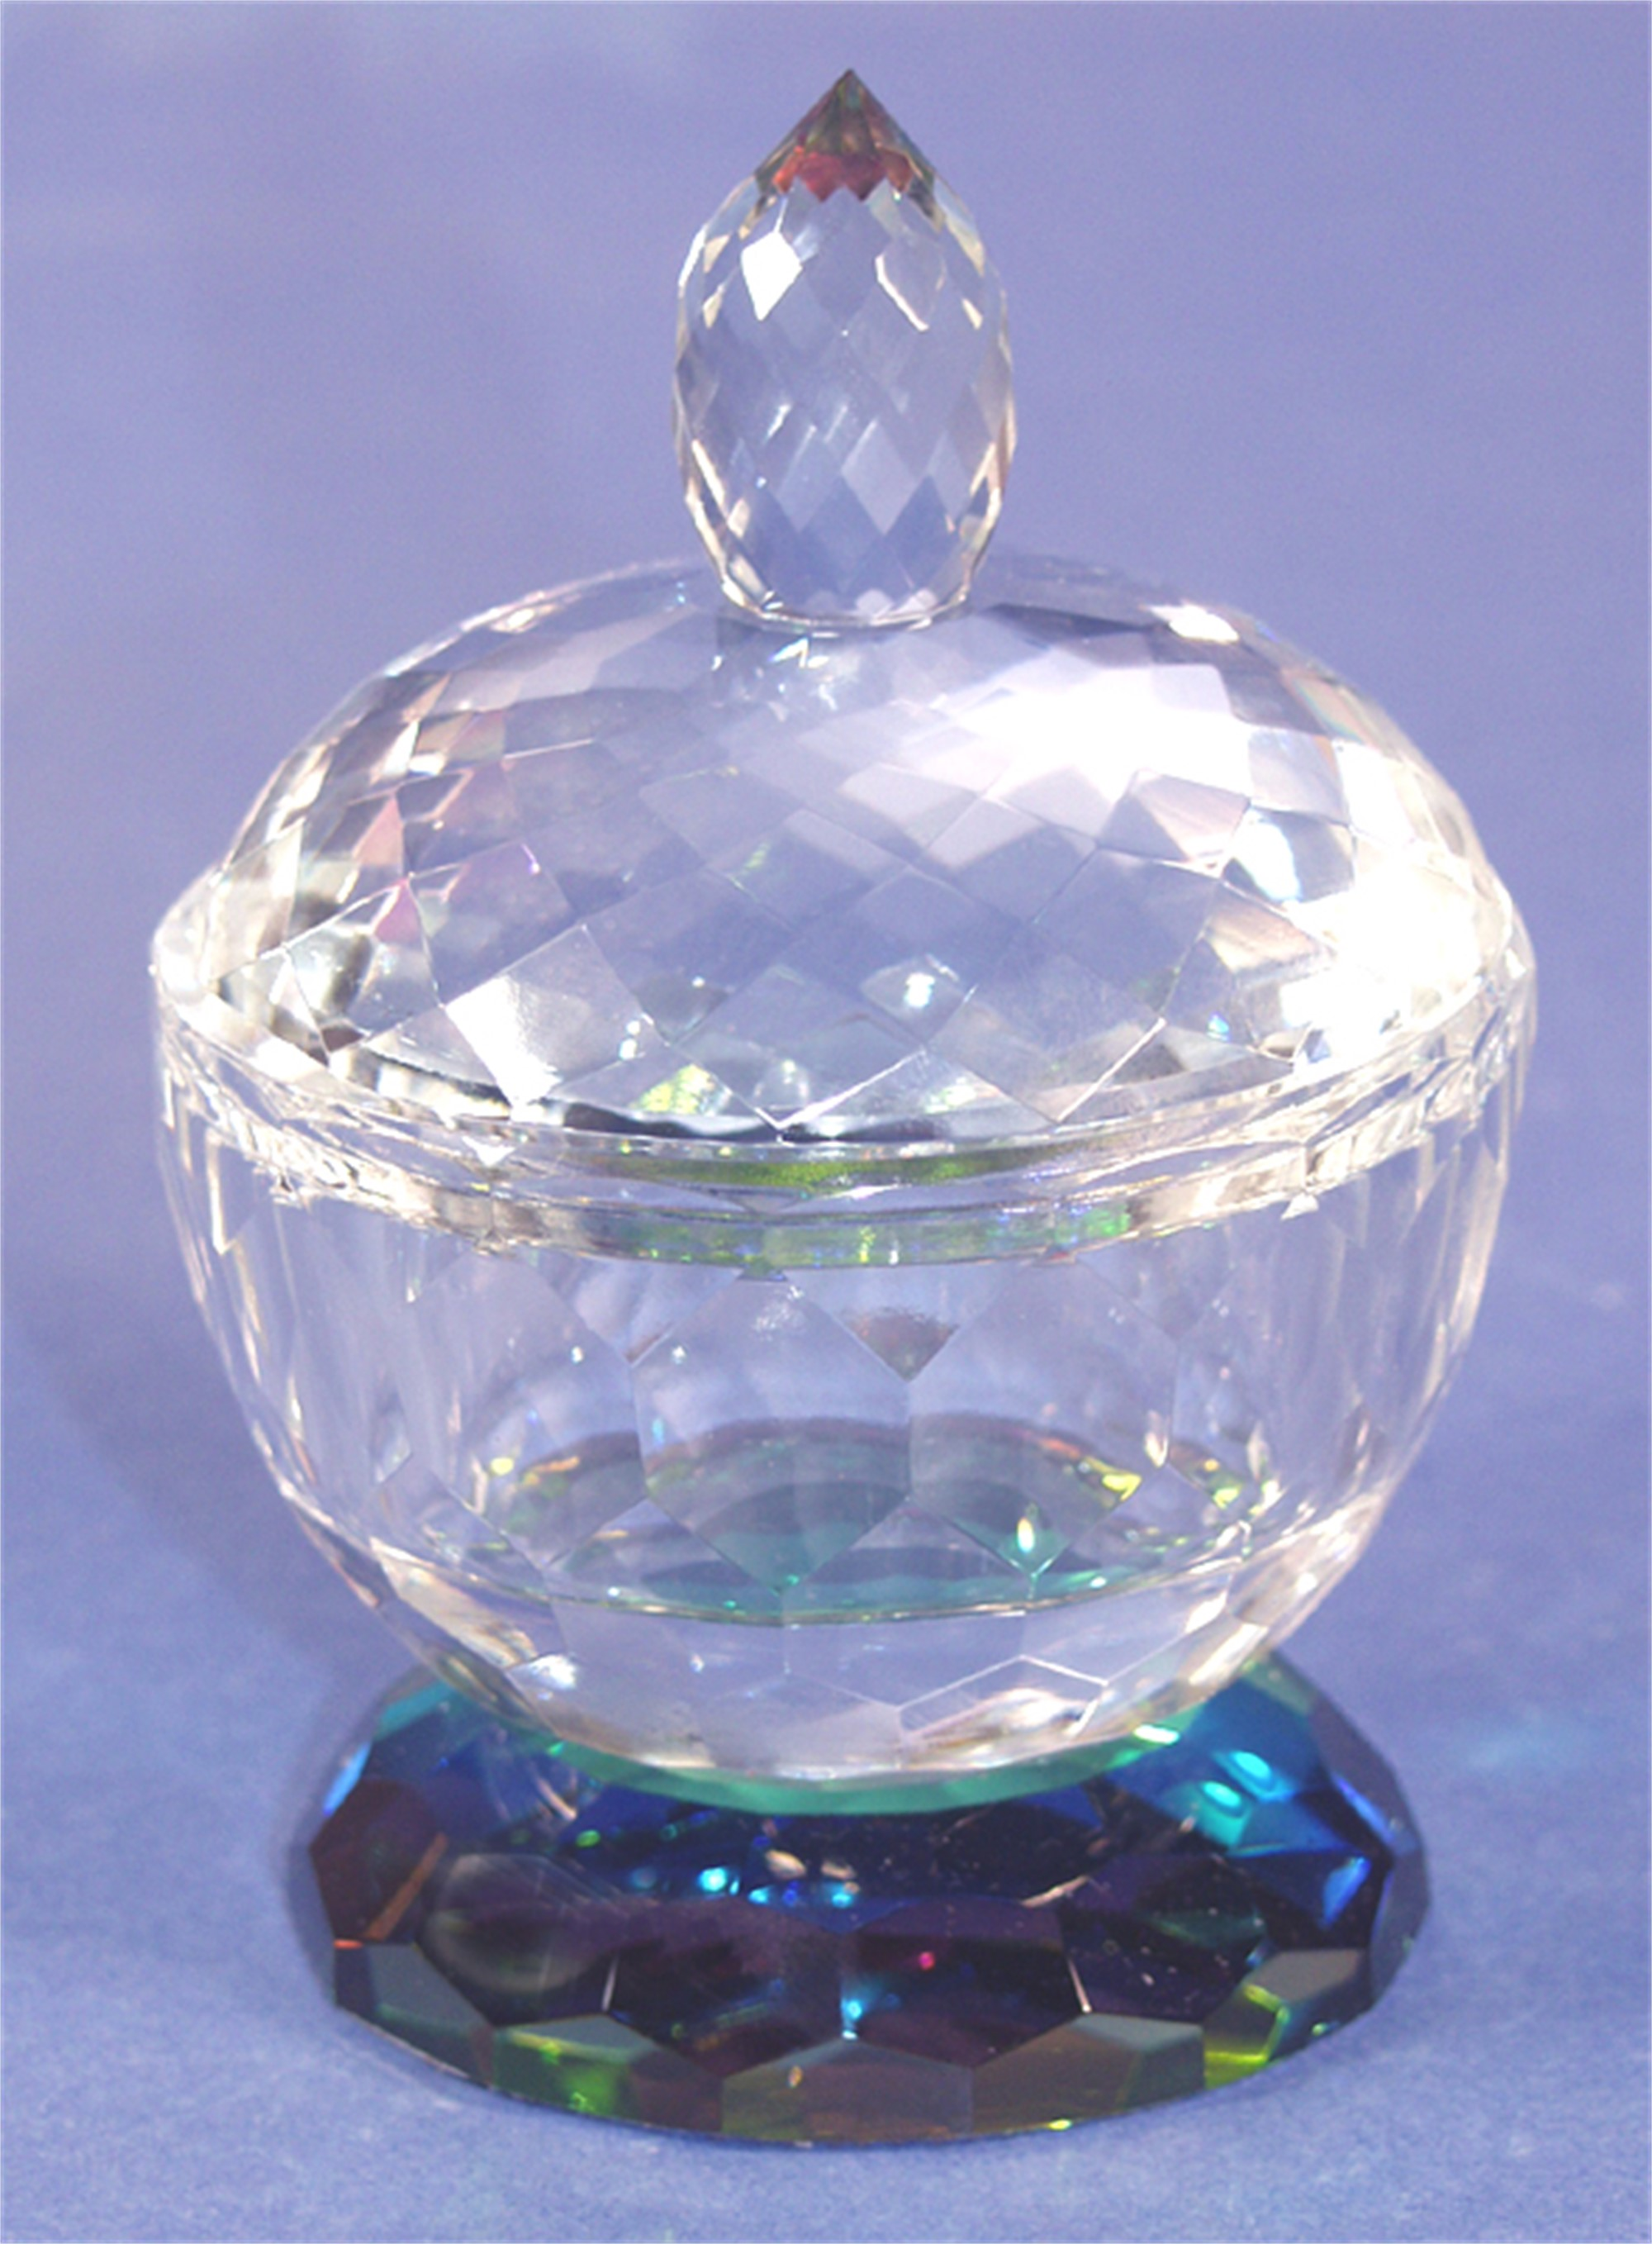 Crystal Candy Dish Small 4 x 4-PO by Harold Lustig